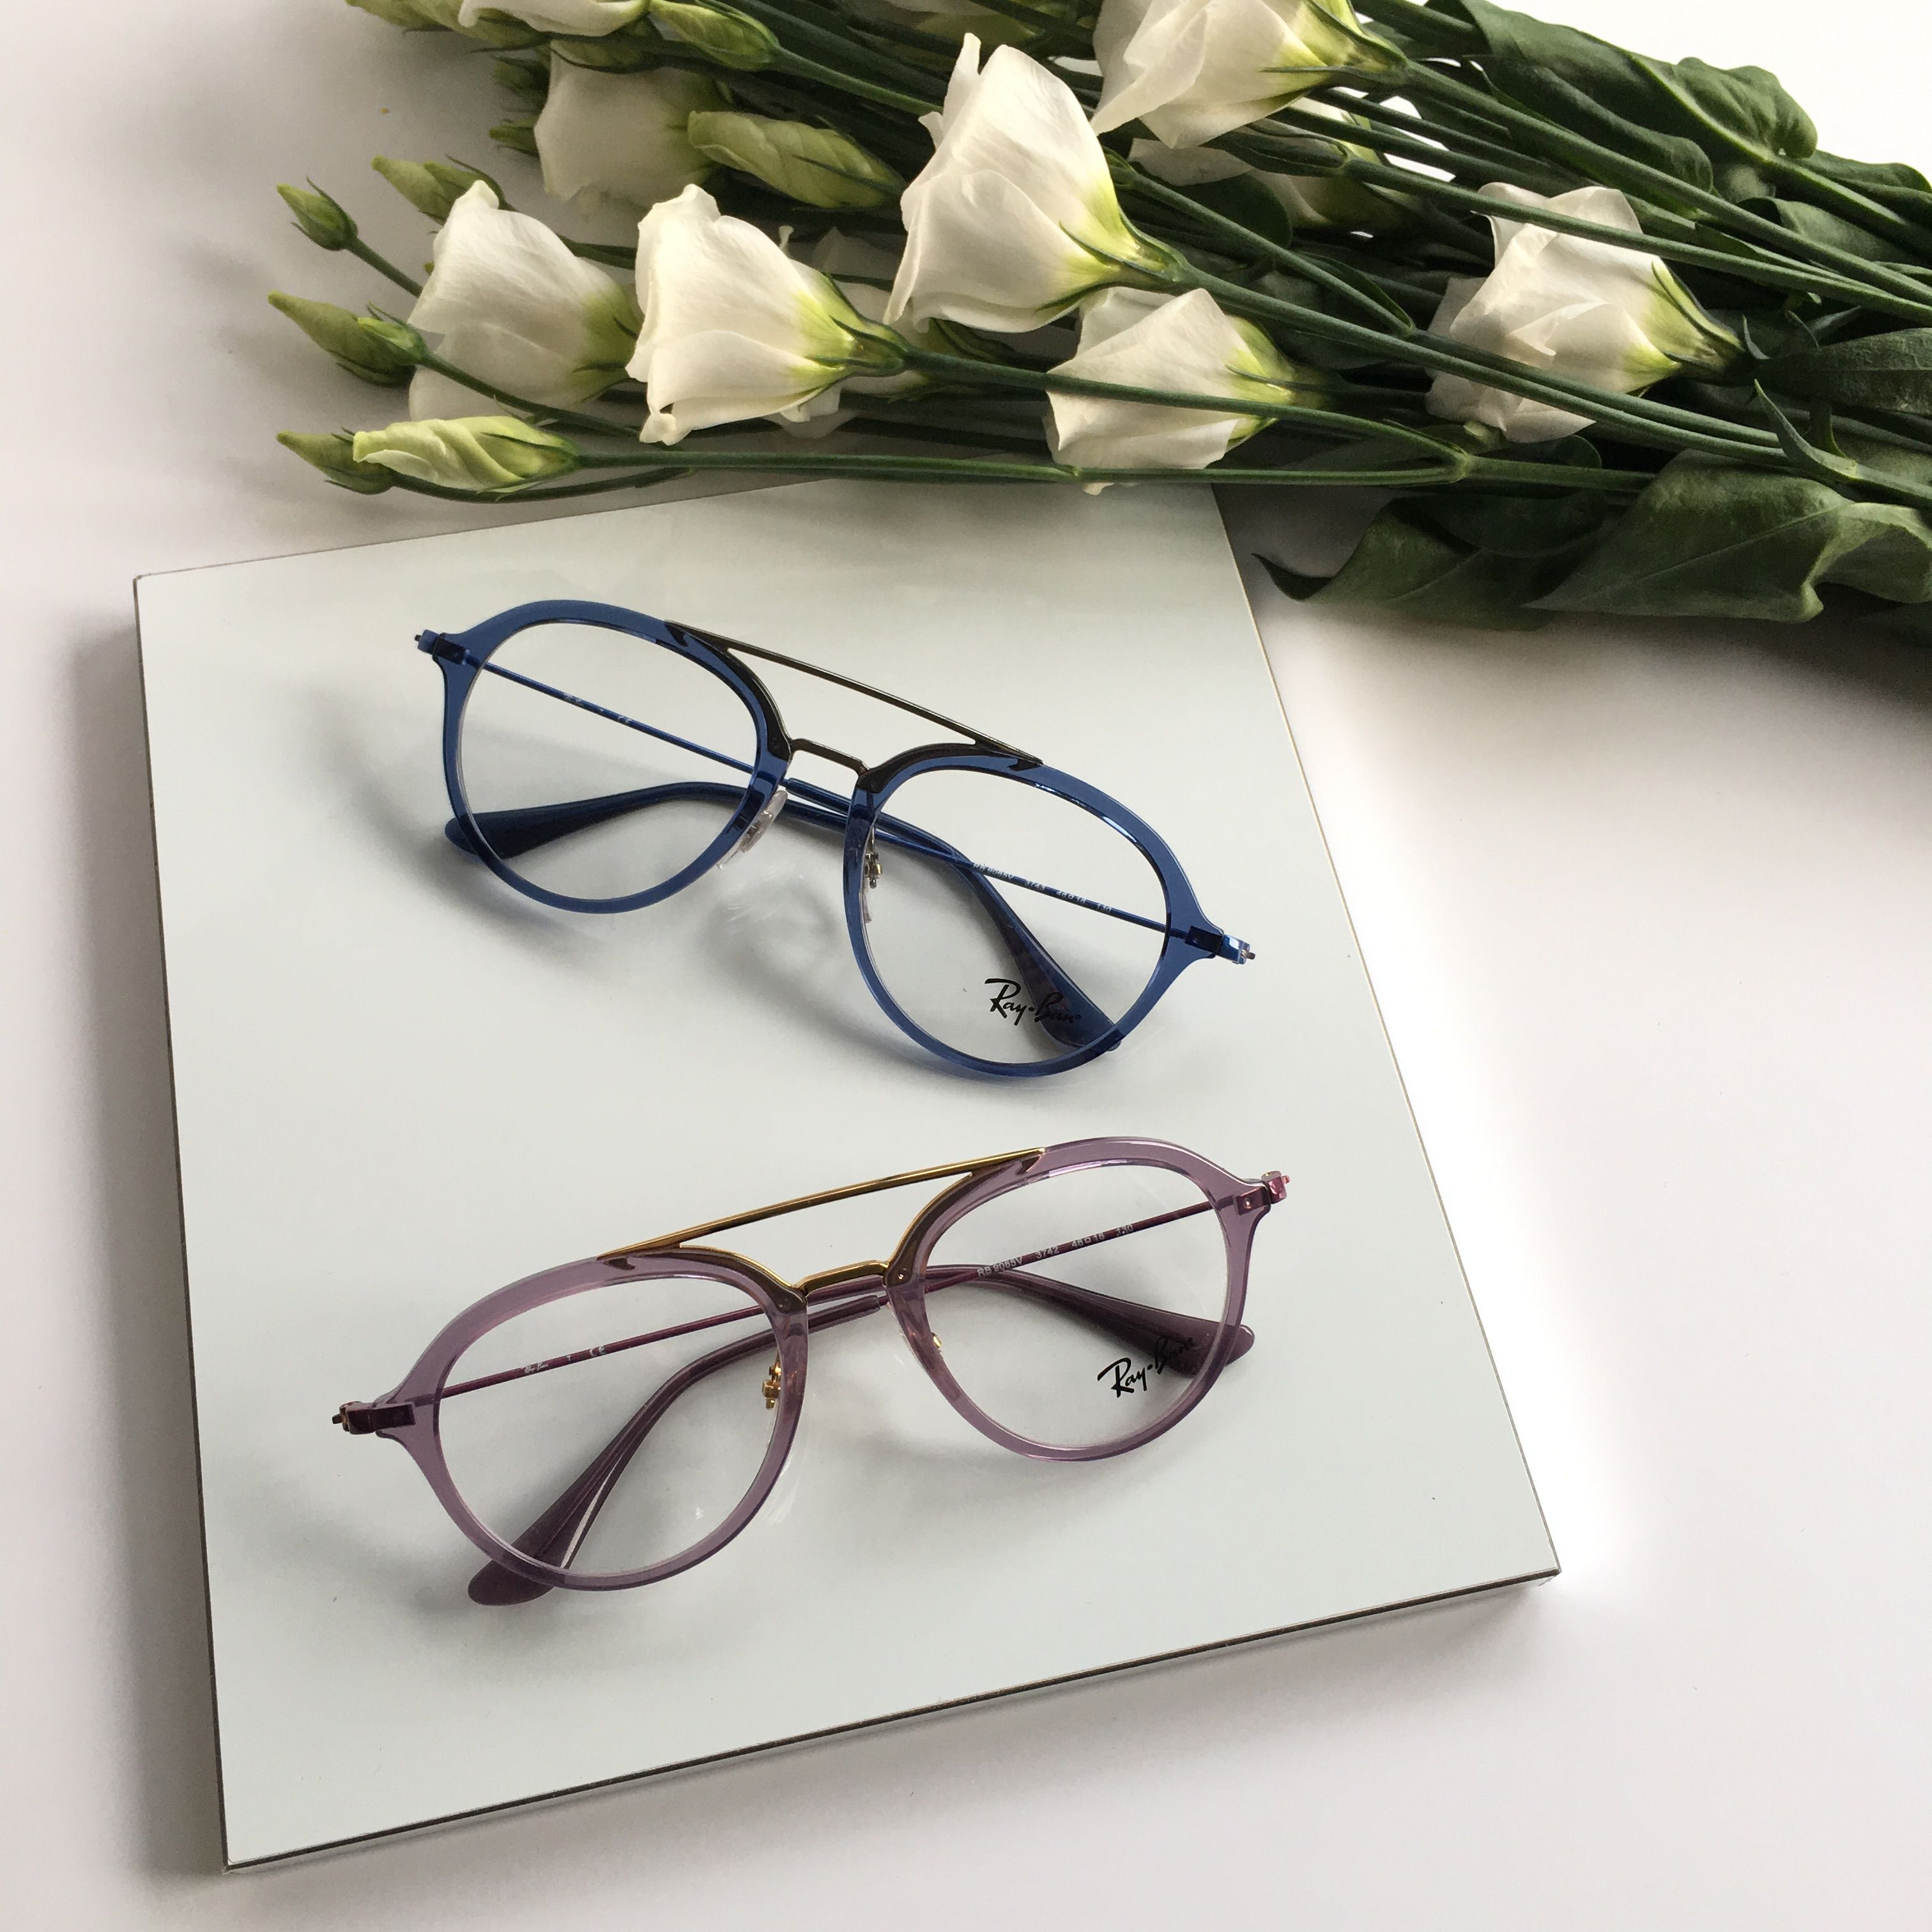 3f4bbf35b33 Ray Ban - Fashionable eyewear for men, women, youngsters and ...